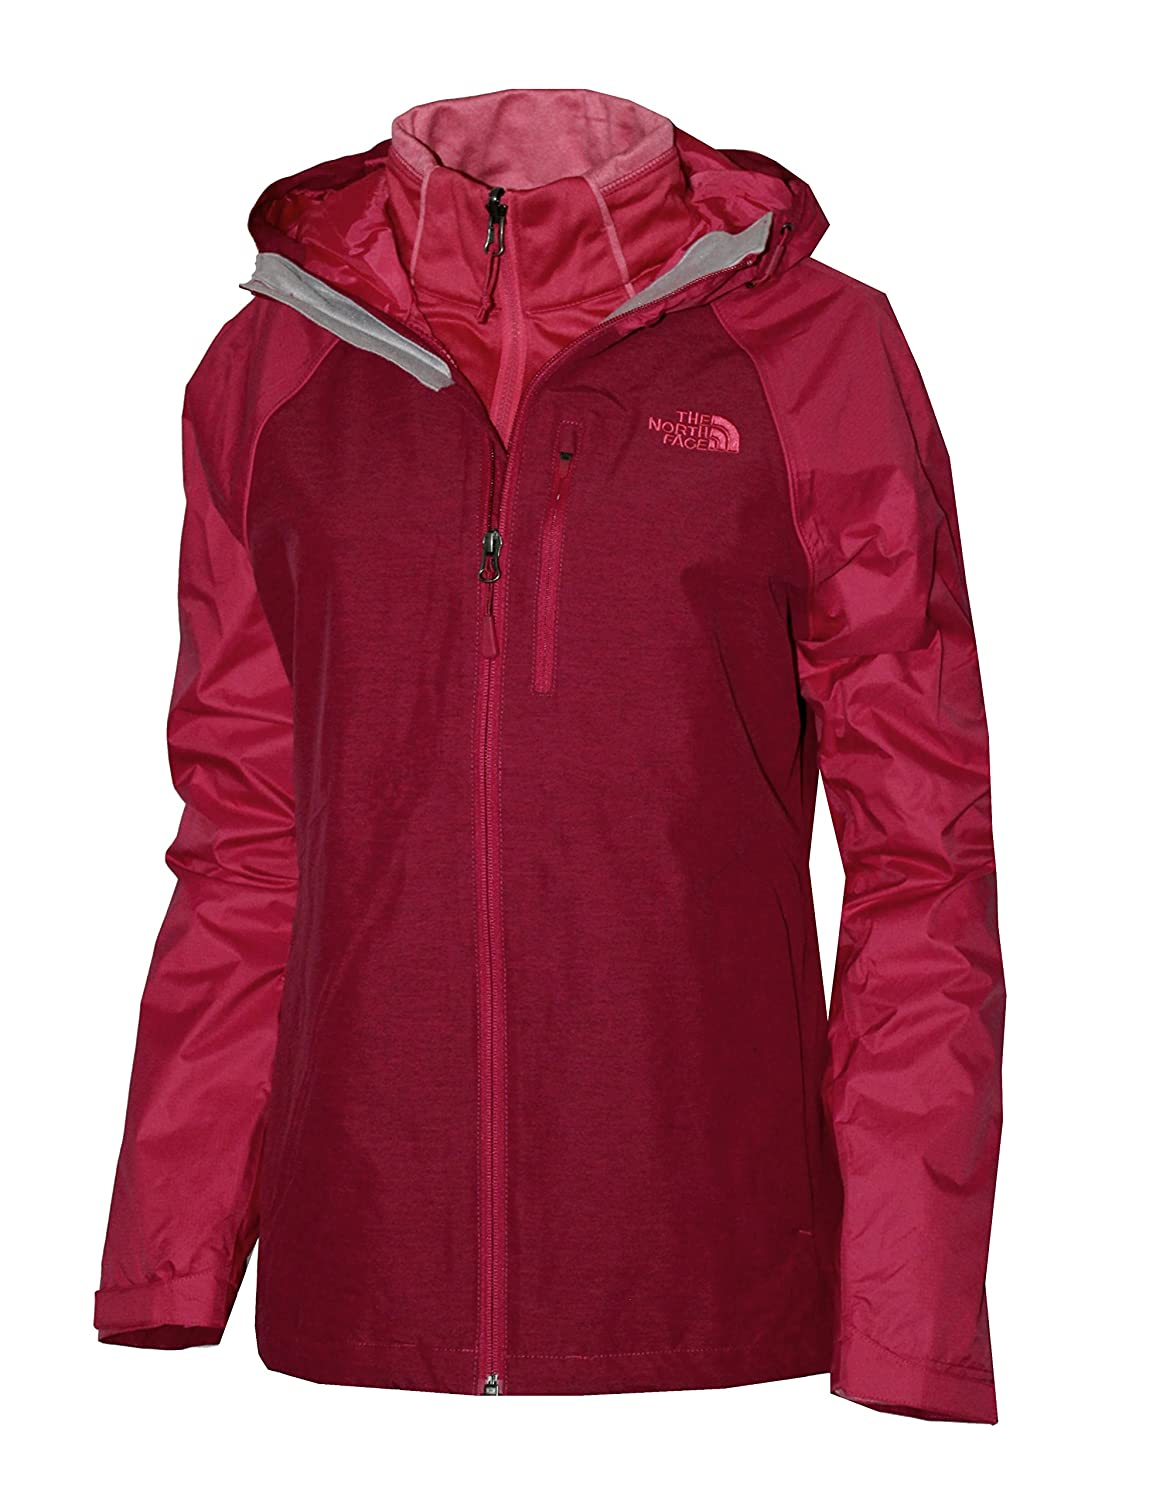 Cerise Pink THE NORTH FACE WOMEN'S CINDER TRICLIMATE 3 IN 1 JACKET Storm bluee